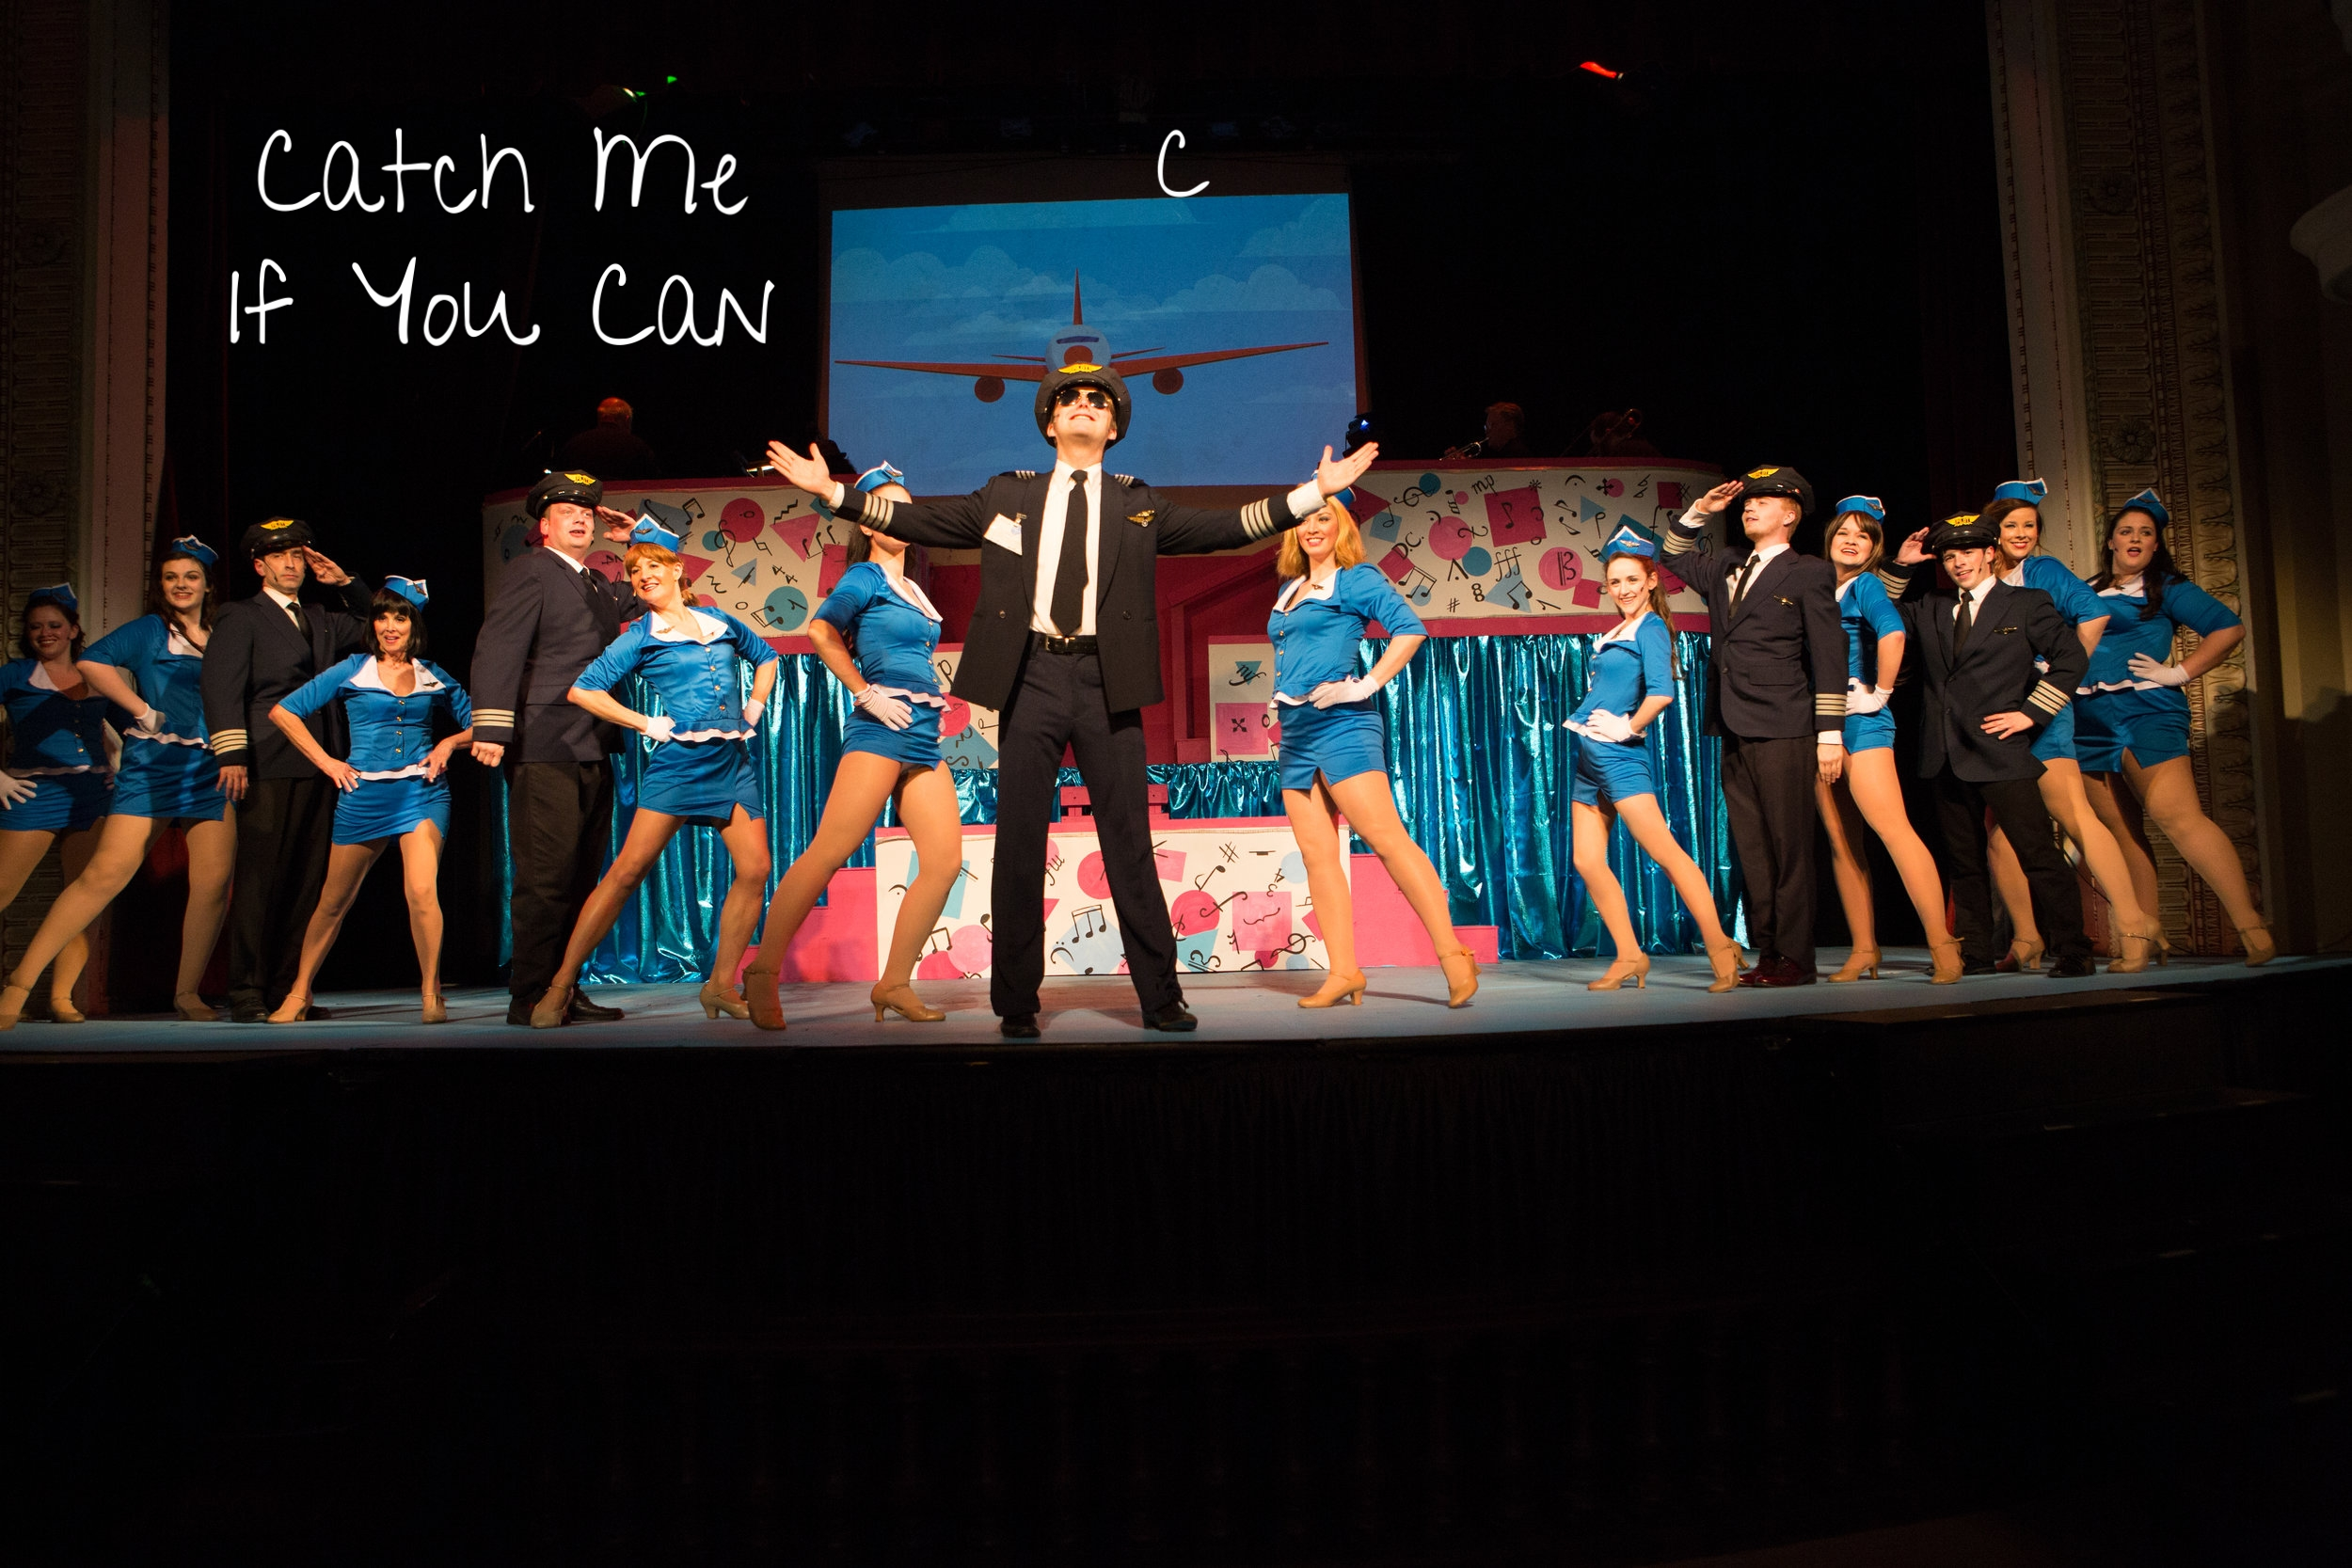 Catch me if you can 5-2016-199.jpg